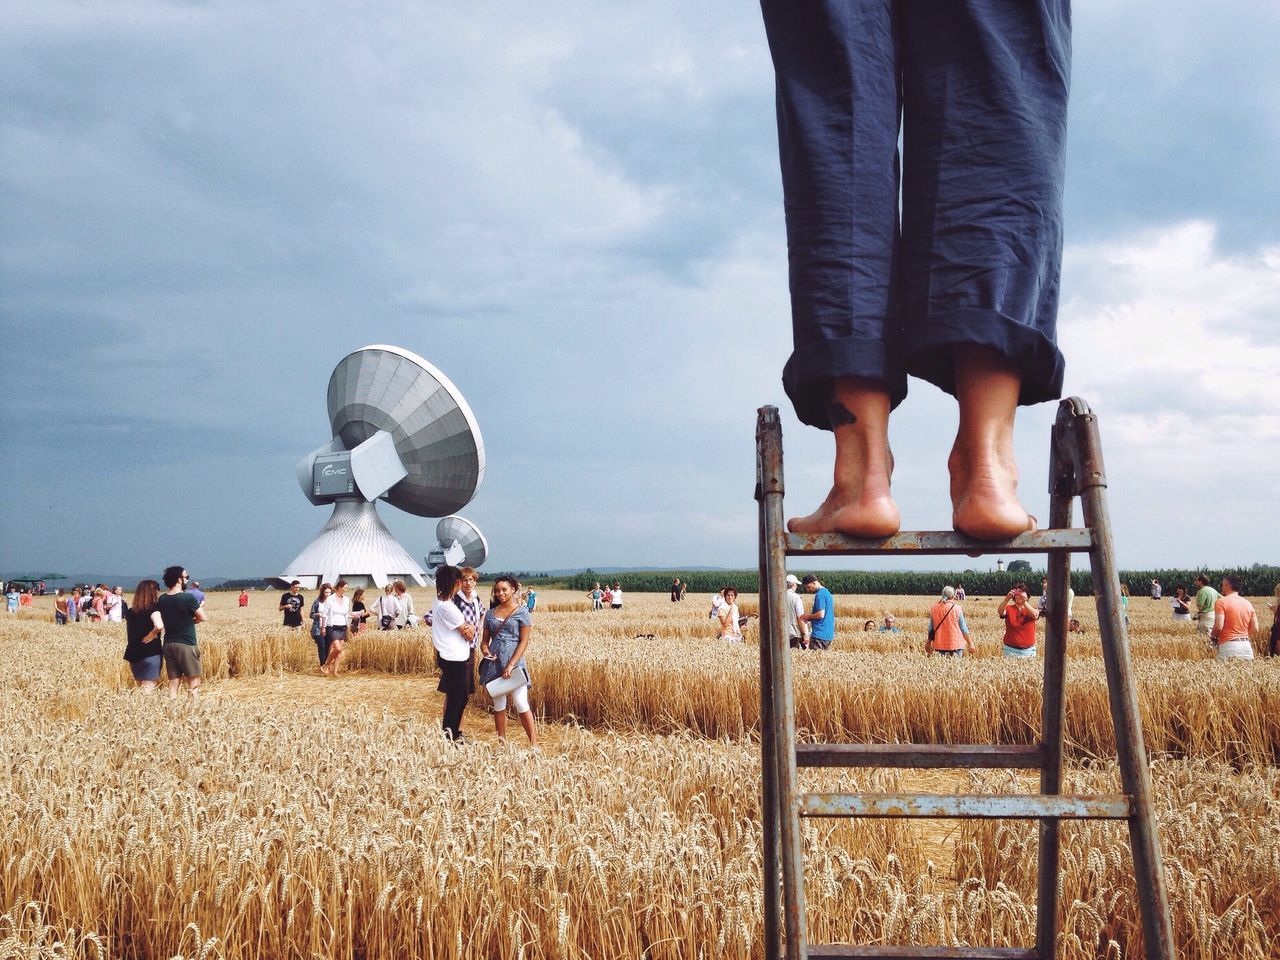 The Crop Circle in Germany//.👽 The Great Outdoors - 2016 EyeEm Awards People People Watching The Photojournalist - 2016 EyeEm Awards Farm Field Tourism Legs Watching Landscape Clouds And Sky Cloudy Sky Scenics Outdoors Outdoor Photography Horizon Summer Summertime Circle Taking Photos Nature Original Experiences Feel The Journey ca27 Fine Art Photography The Great Outdoors 2016 Finalists EyeEm X Canon - Feel The Journey